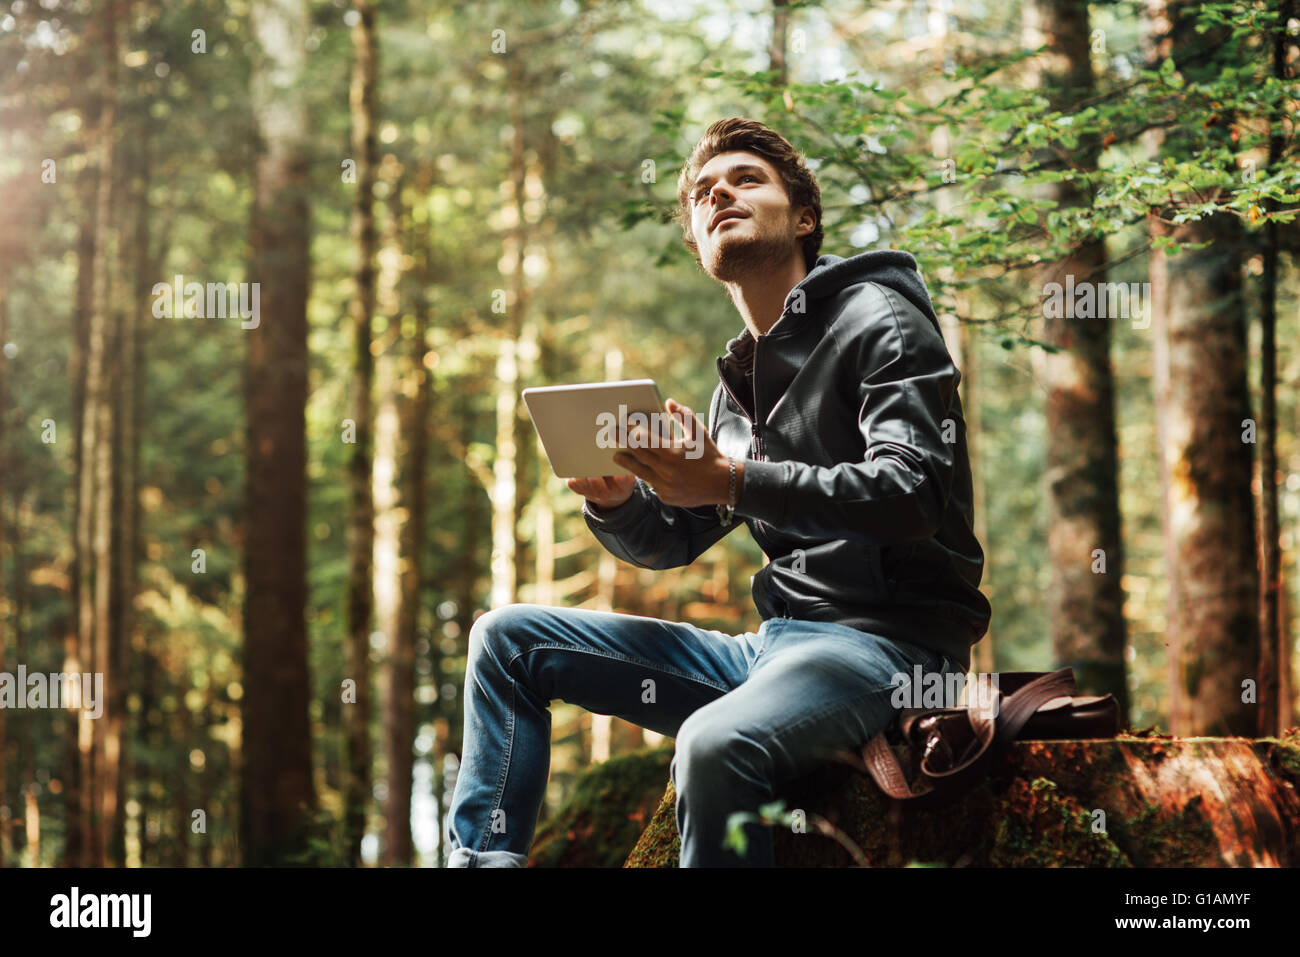 Young handsome man sitting in the woods and using a digital touch screen tablet, wi-fi connection and freedom concept - Stock Image